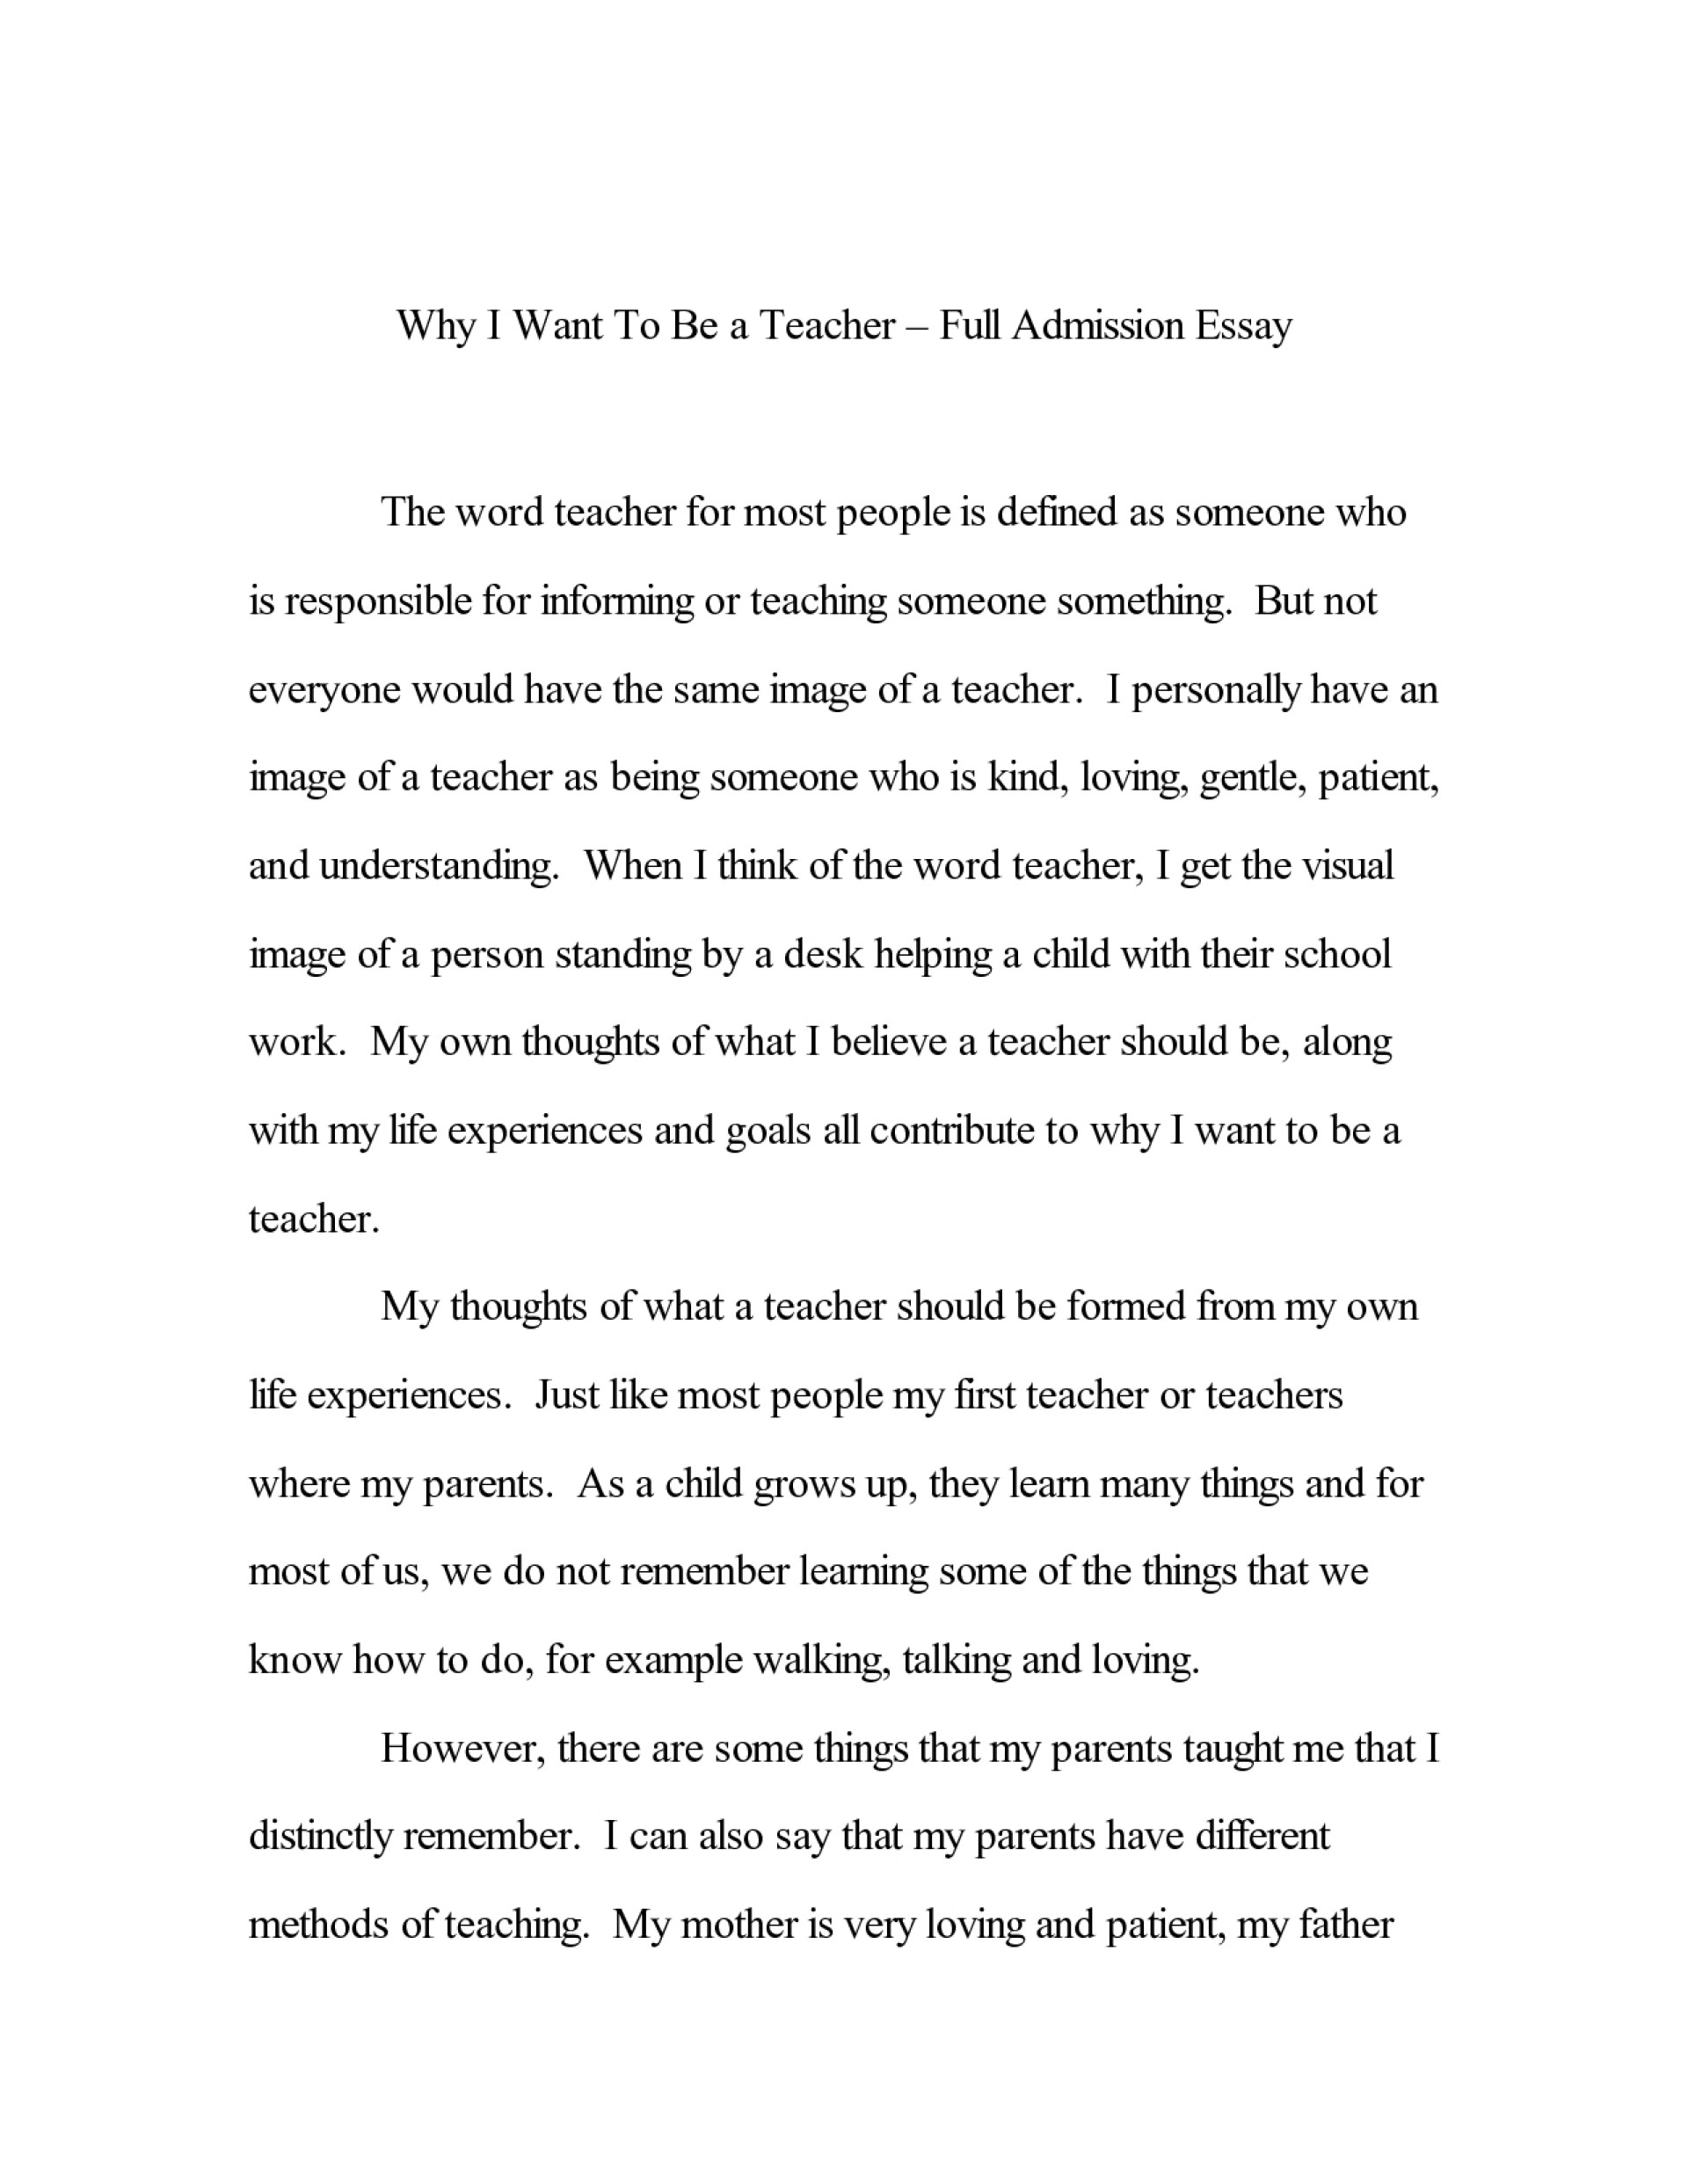 003 College App Essays Breathtaking Essay Examples Admission Sample Pdf 300 Words Application 250 1920